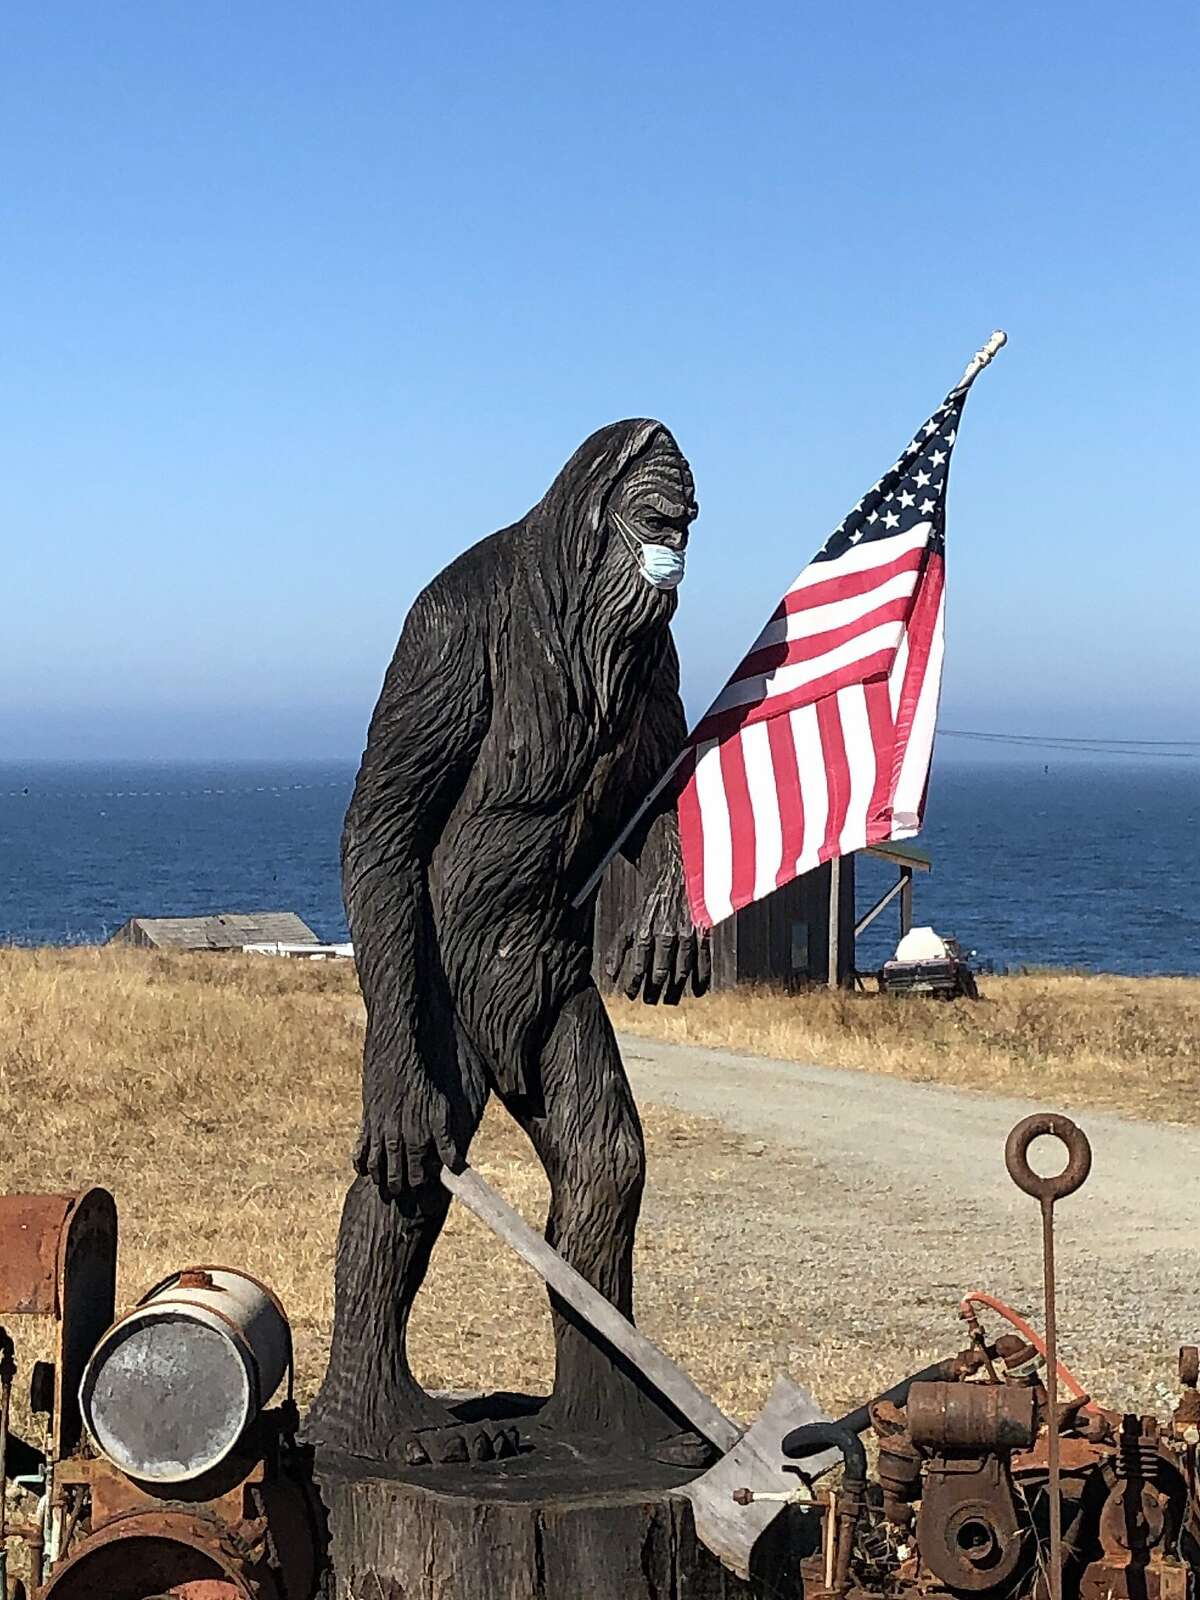 Stewarts point store and Bigfoot statue